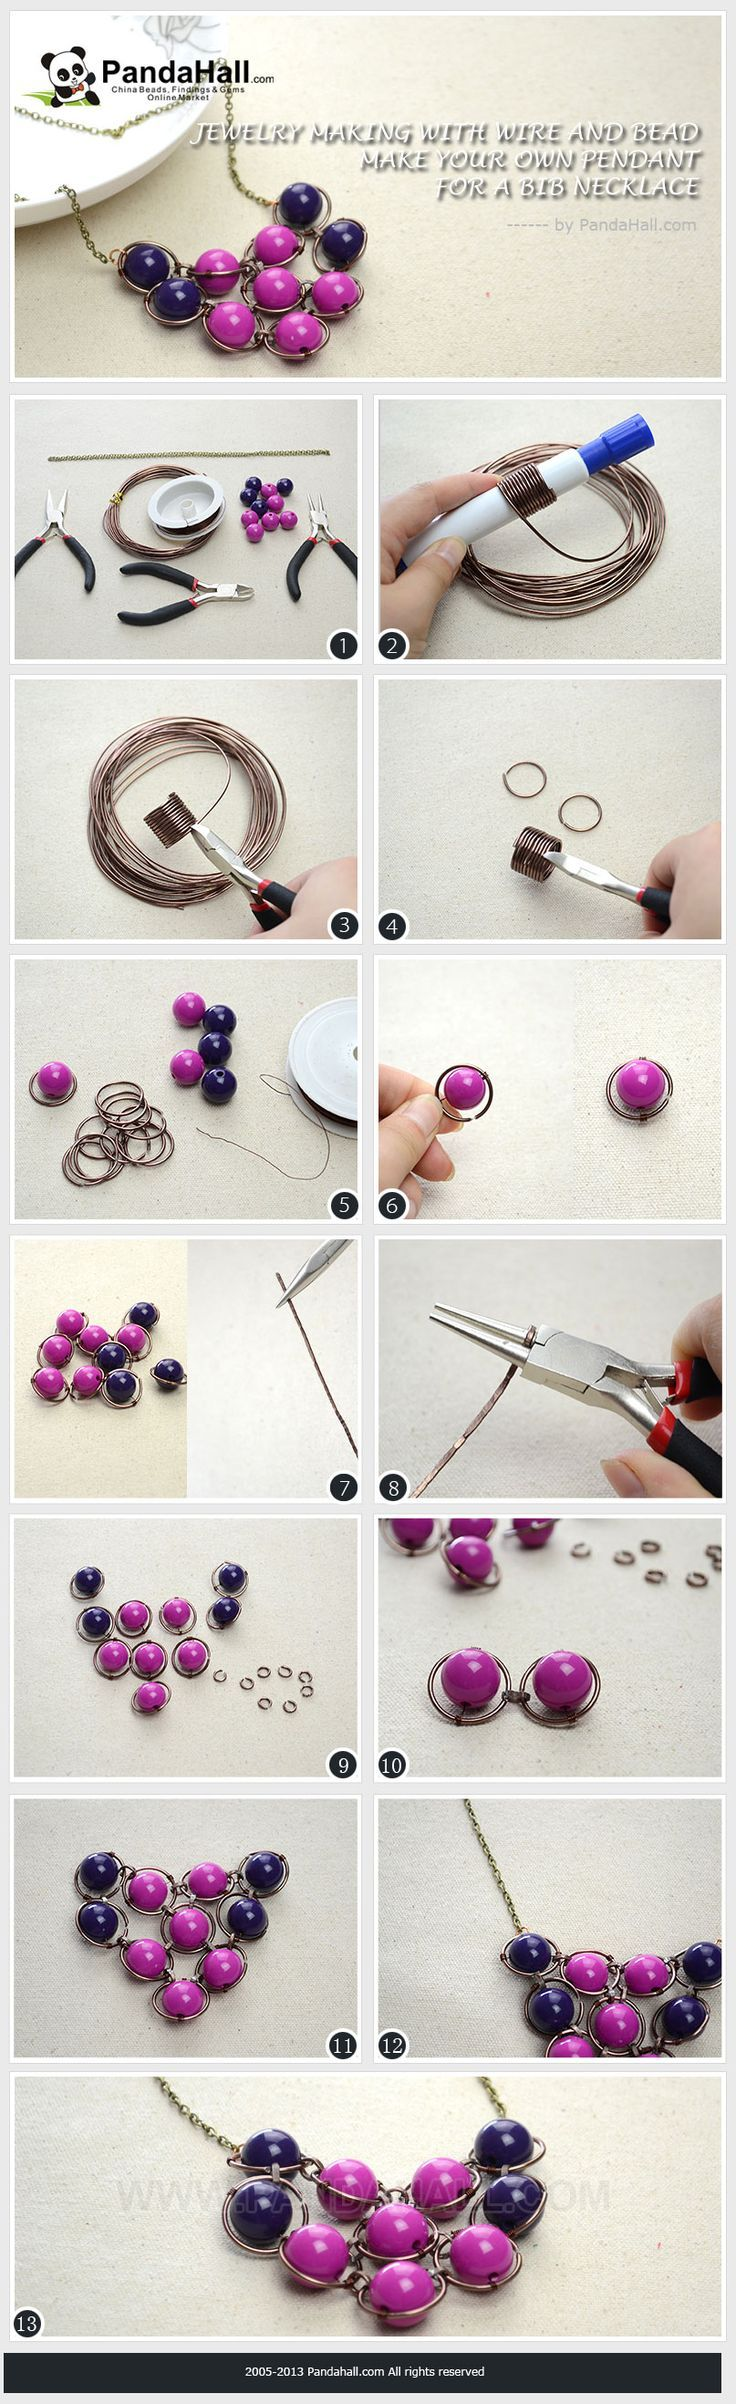 655 best Jewelry Making Tutorials images on Pinterest | Tutorials ...